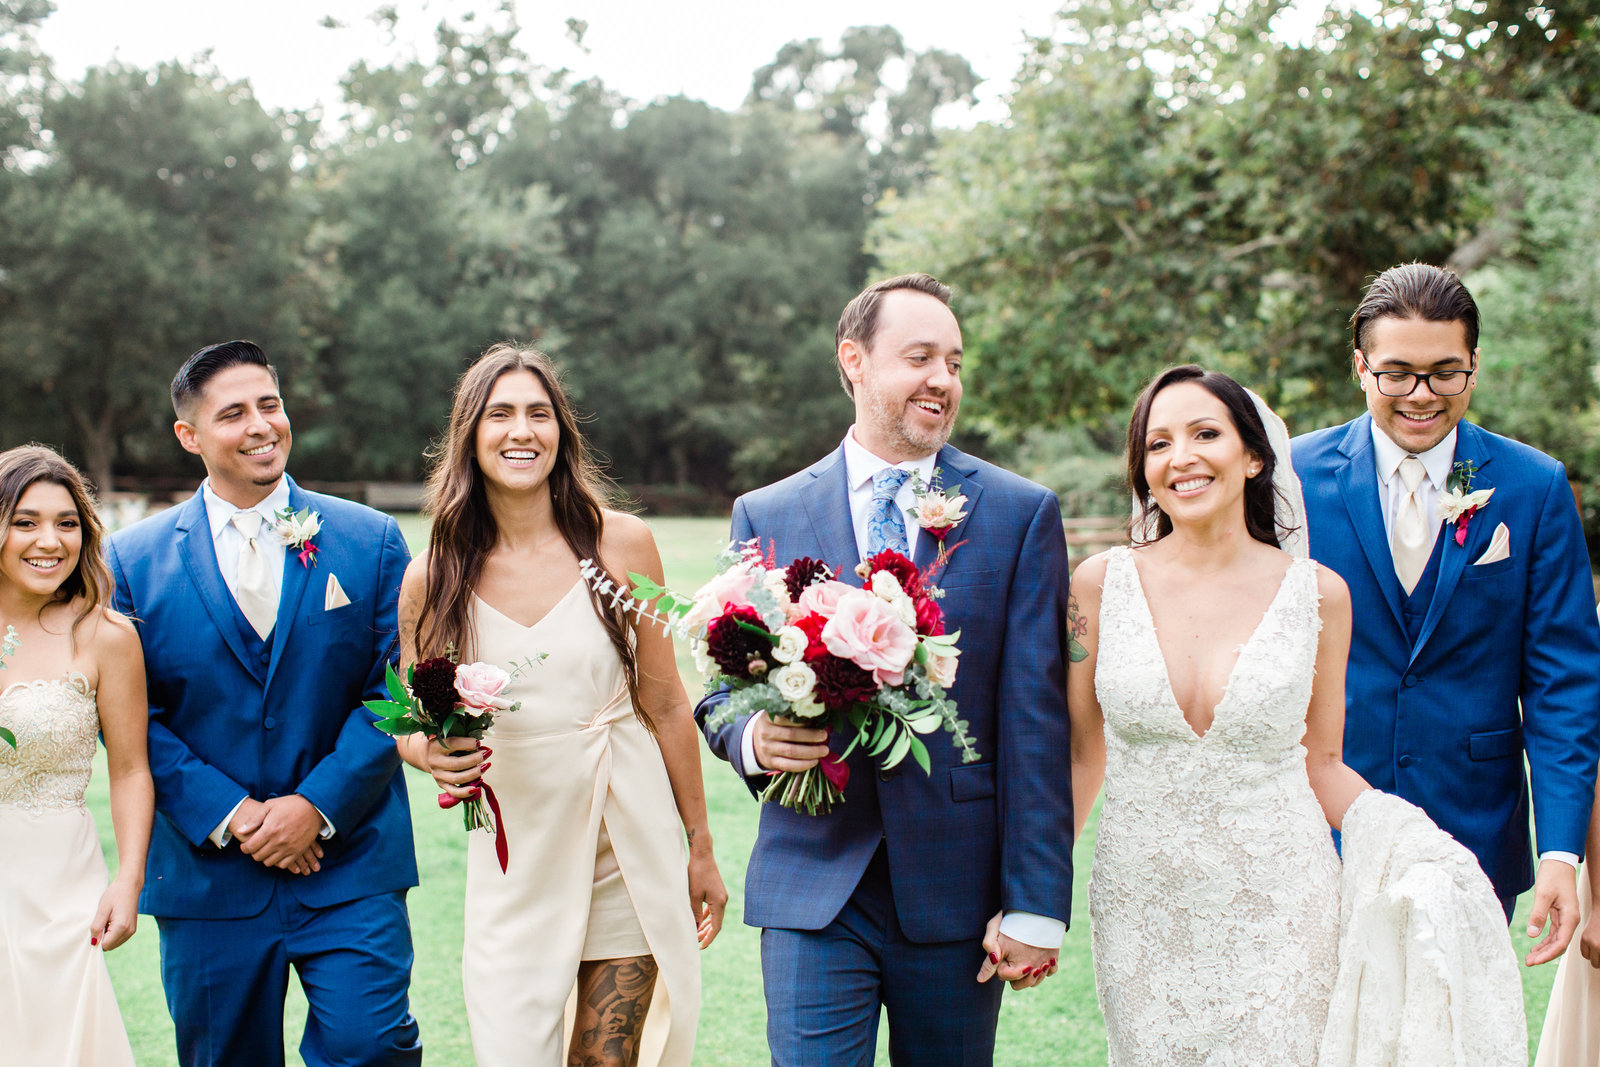 Calamigos-Ranch-Wedding-Bridal-Party